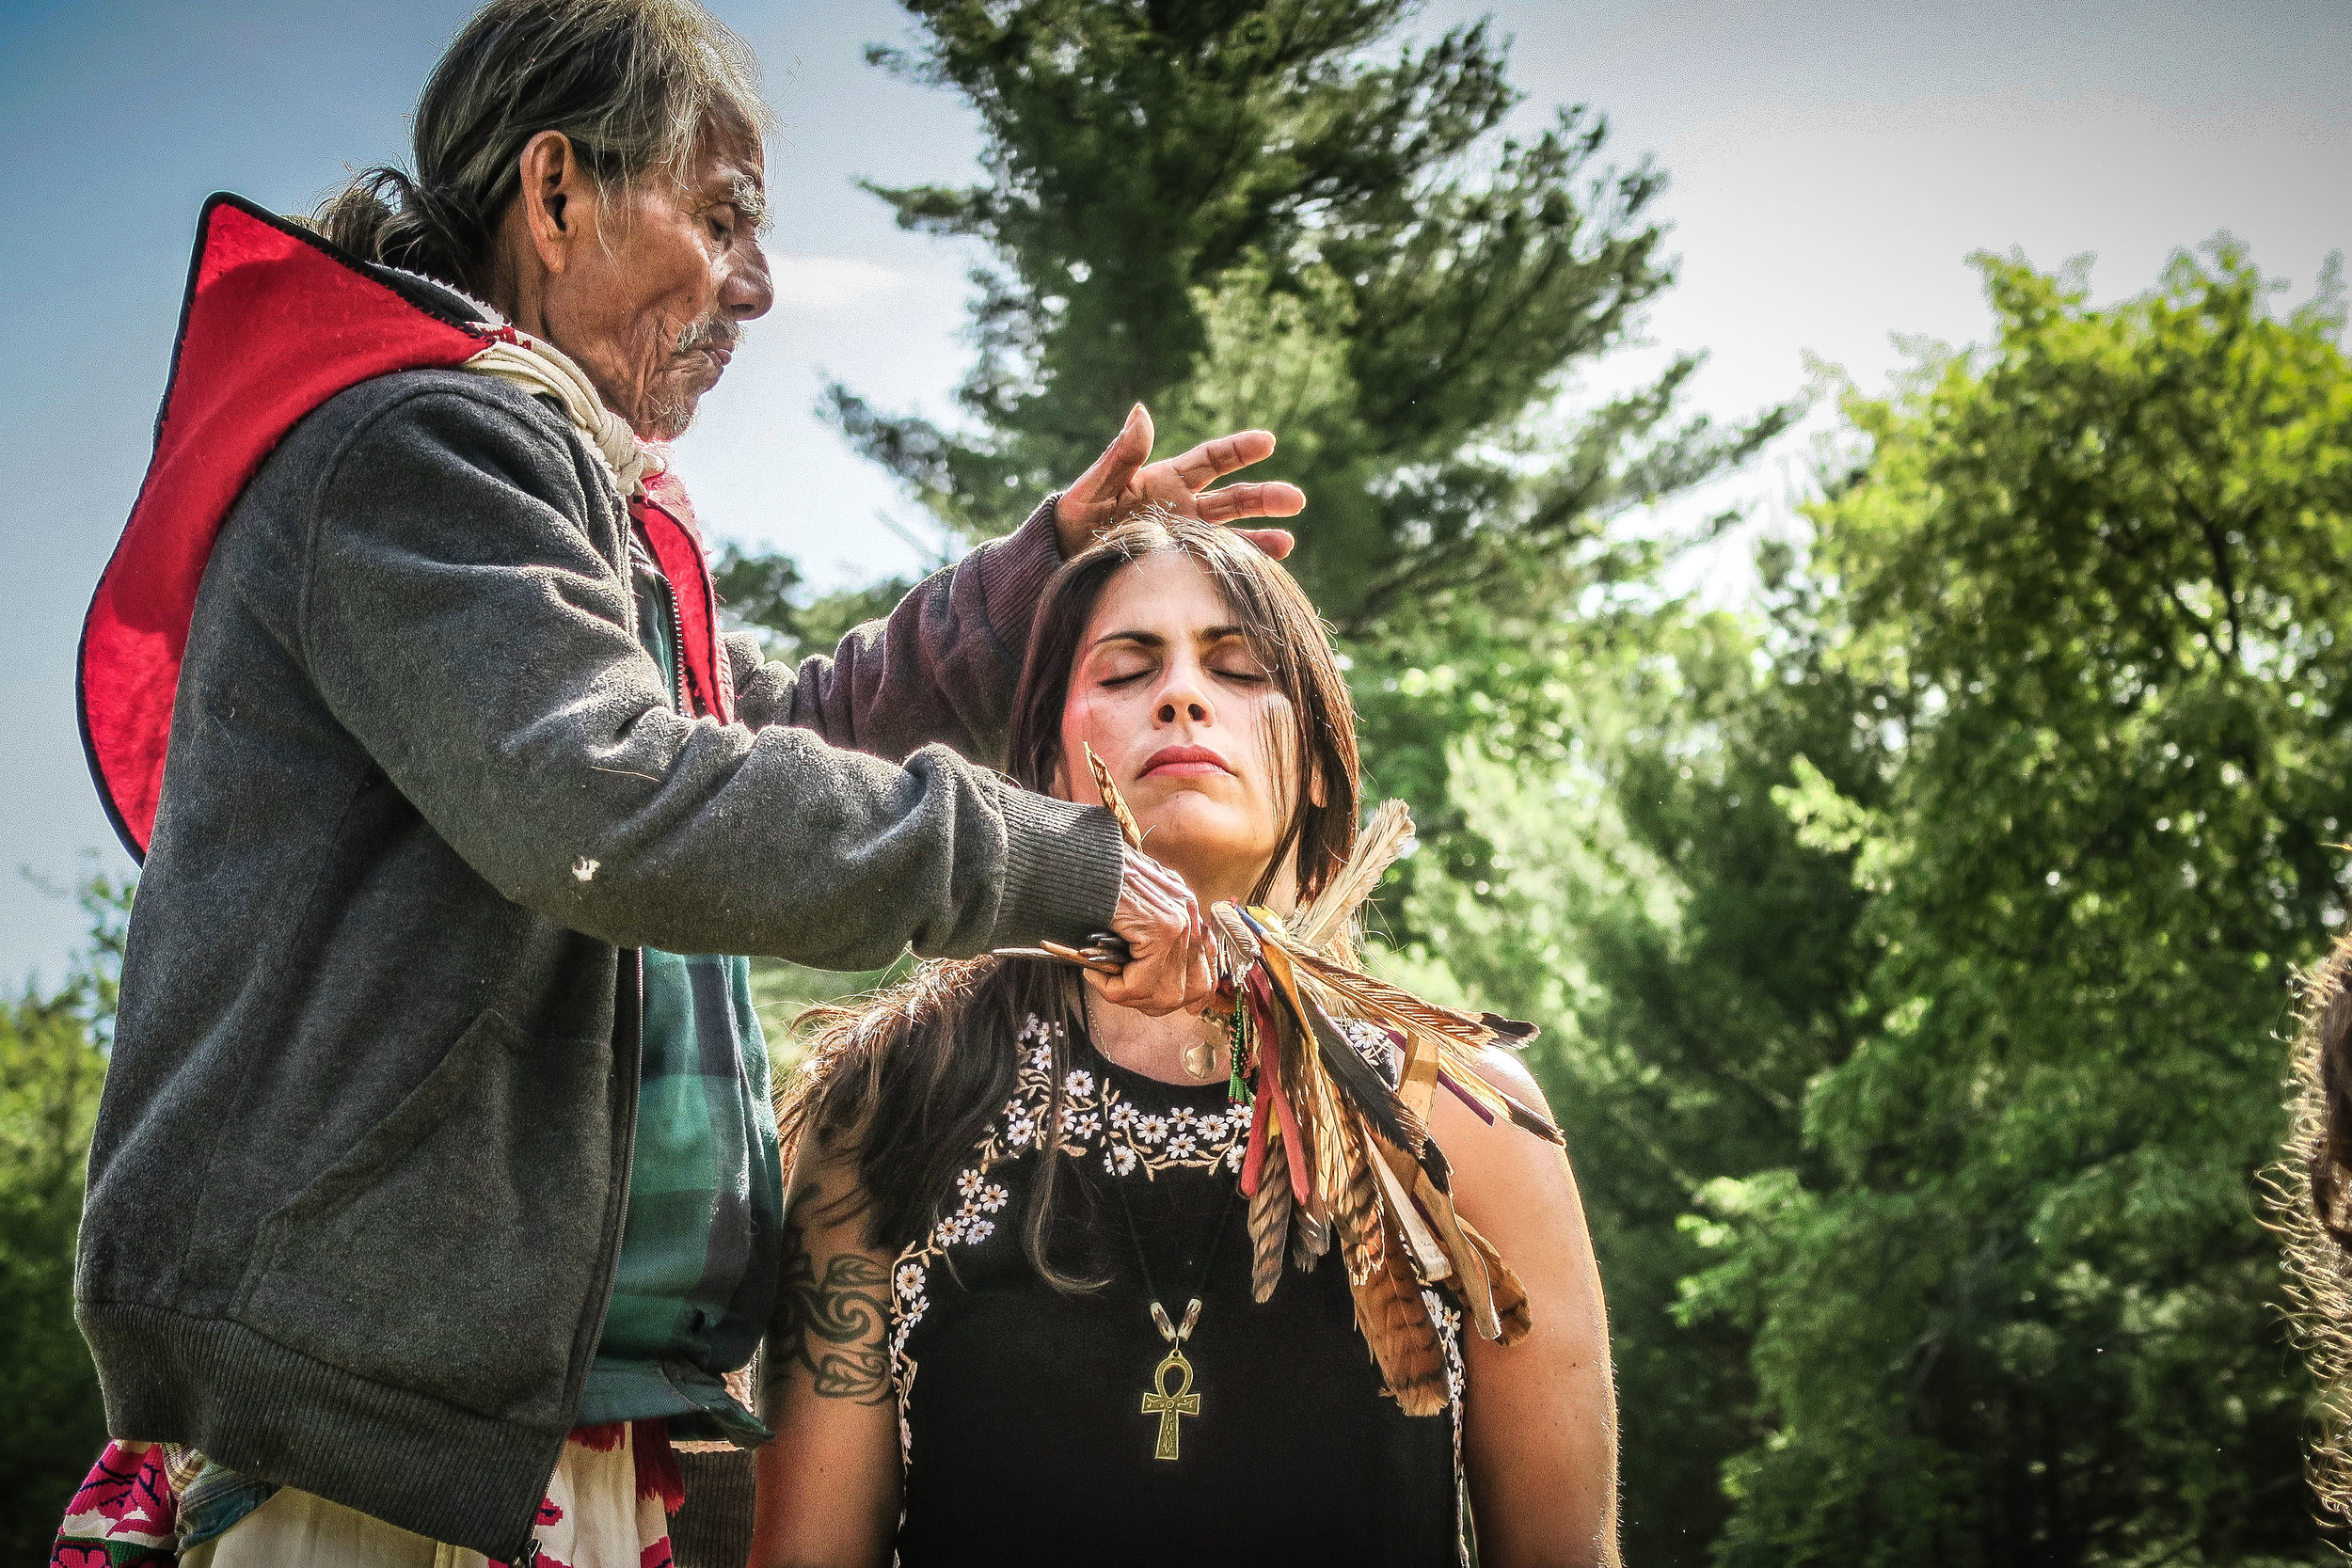 Find deep healing and transformation, guided by masters from unbroken lineages of traditional doctors who work with the spirits of plants and Mother Nature. Private Healings with the elders will be available for booking. - HEALING